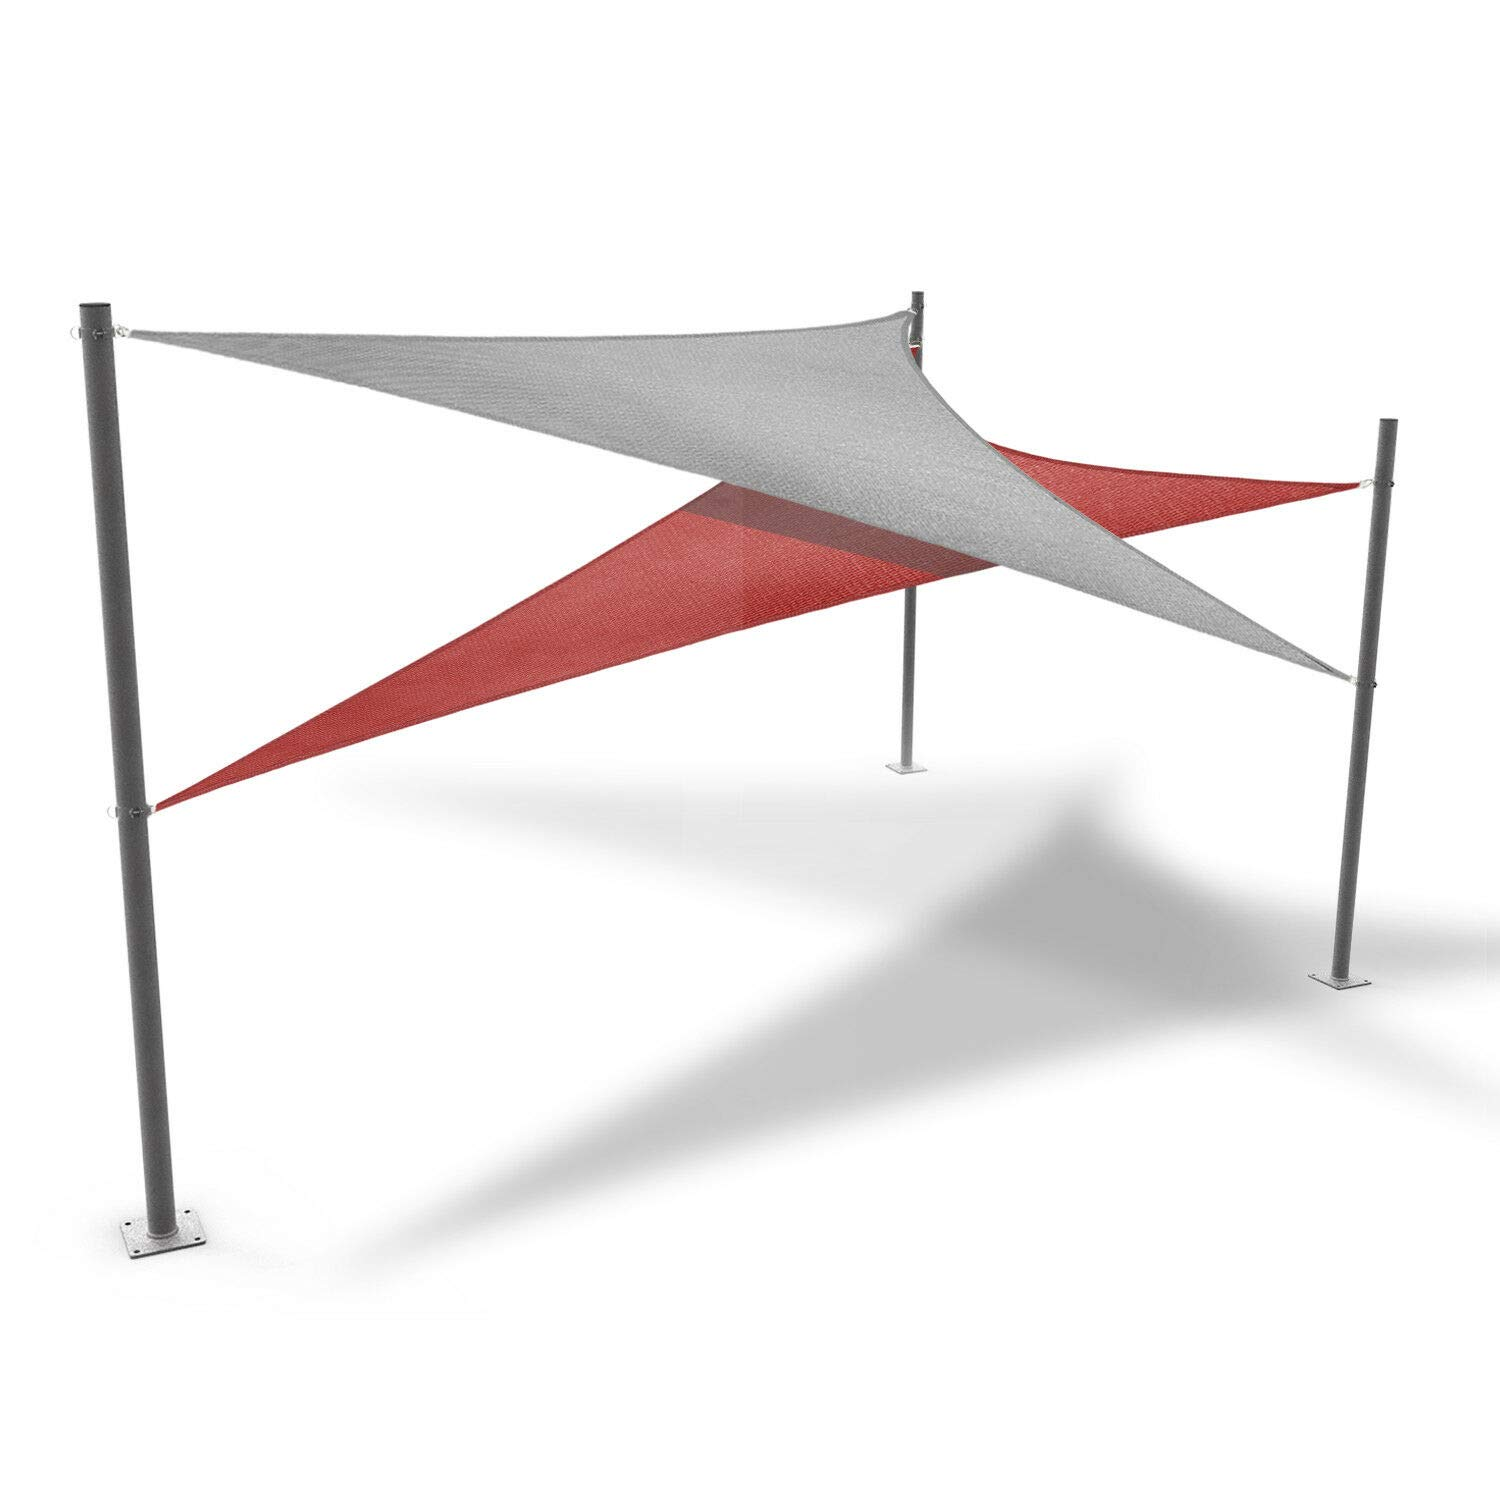 Windscreen4less 108'' Sun Shade Sail Pole,Knitted Shade Sail Stand Post,Awning Support Poles,Canopy Support Poles,Strengthen,Heavy-Duty Support-Steel - Gray by Windscreen4less (Image #6)